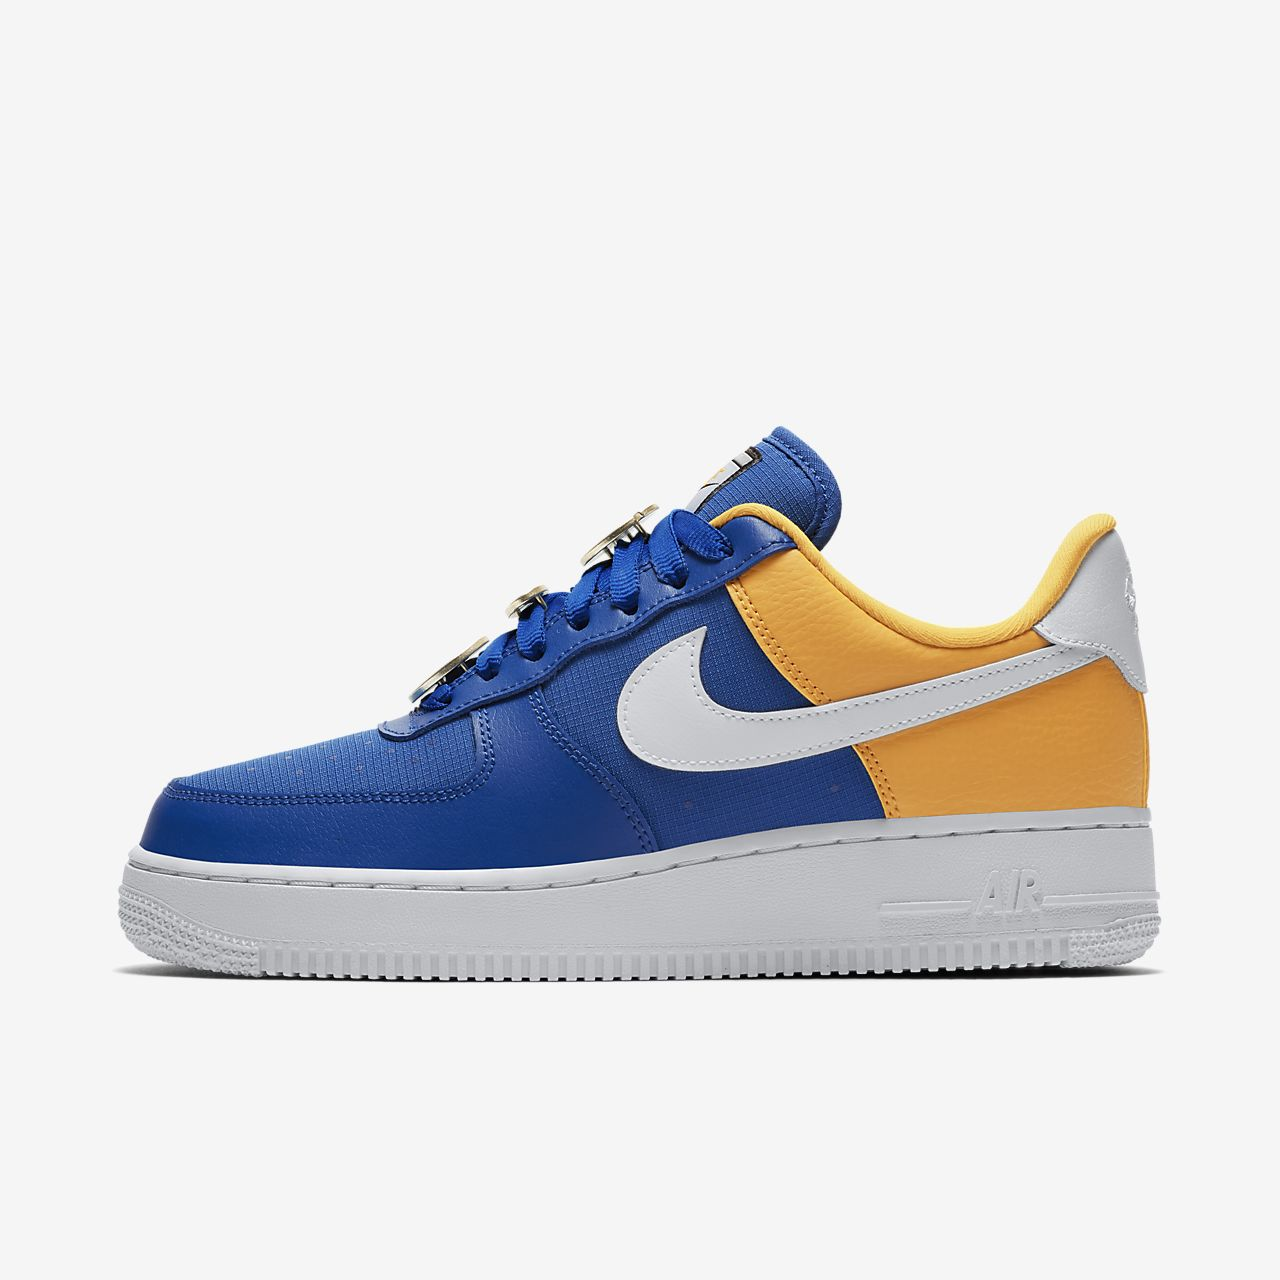 Nike Air Force 1 '07 SE Damenschuh